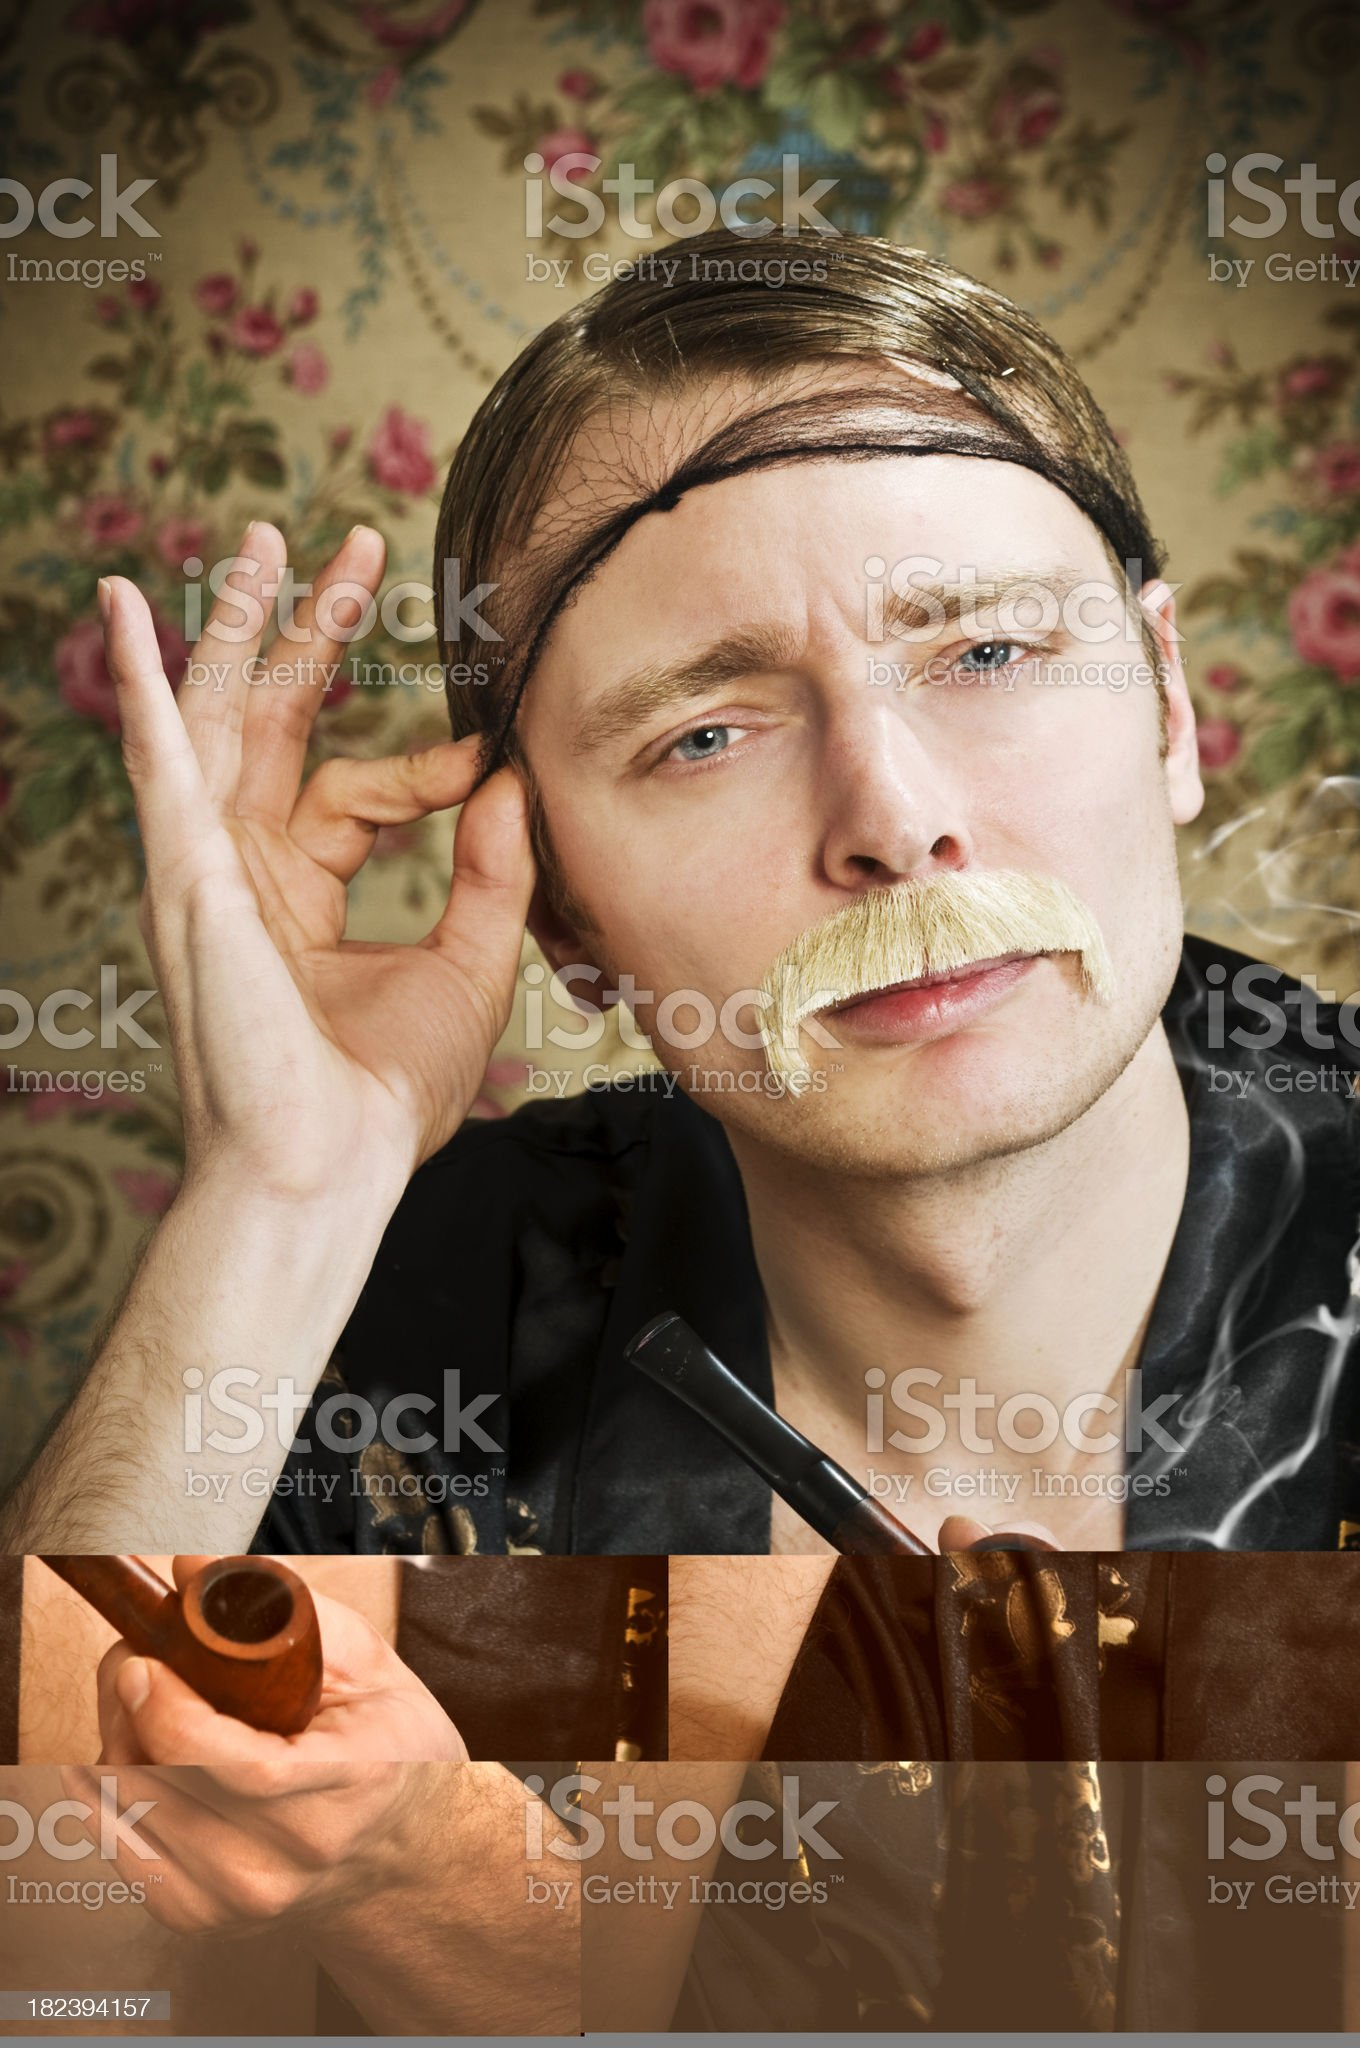 bohemian sir royalty-free stock photo